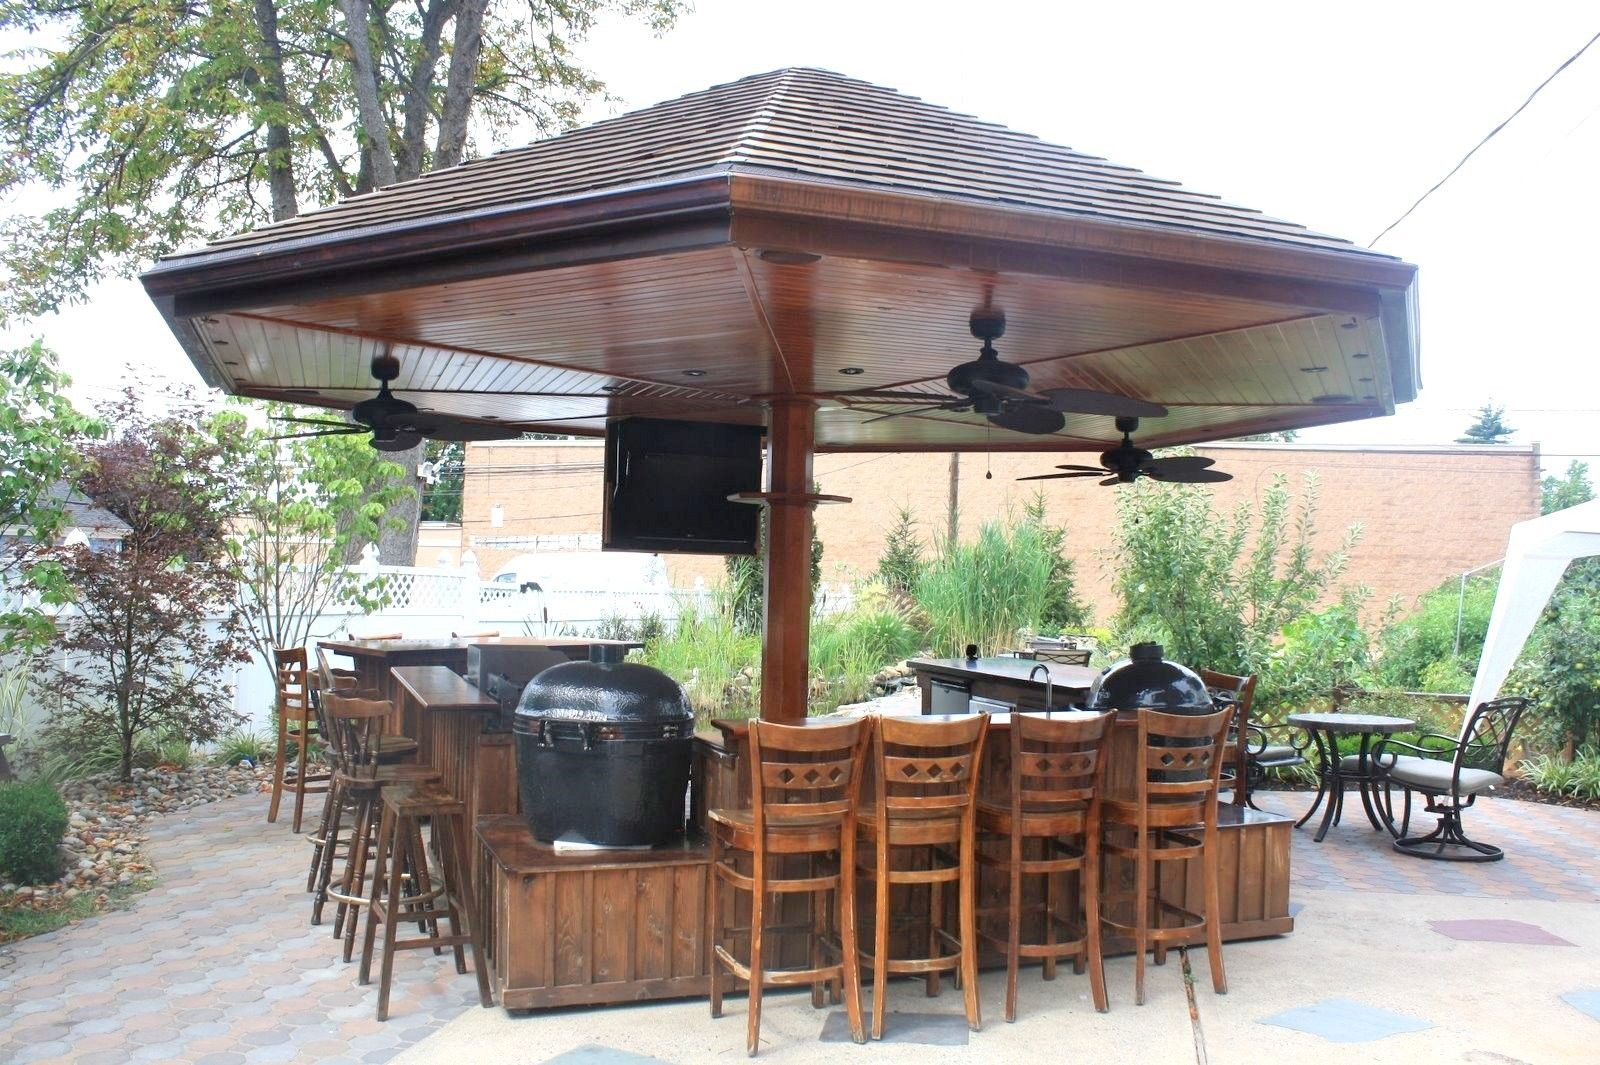 Handmade primo grill outdoor kitchen and bar by deck for Outdoor kitchen roof structures